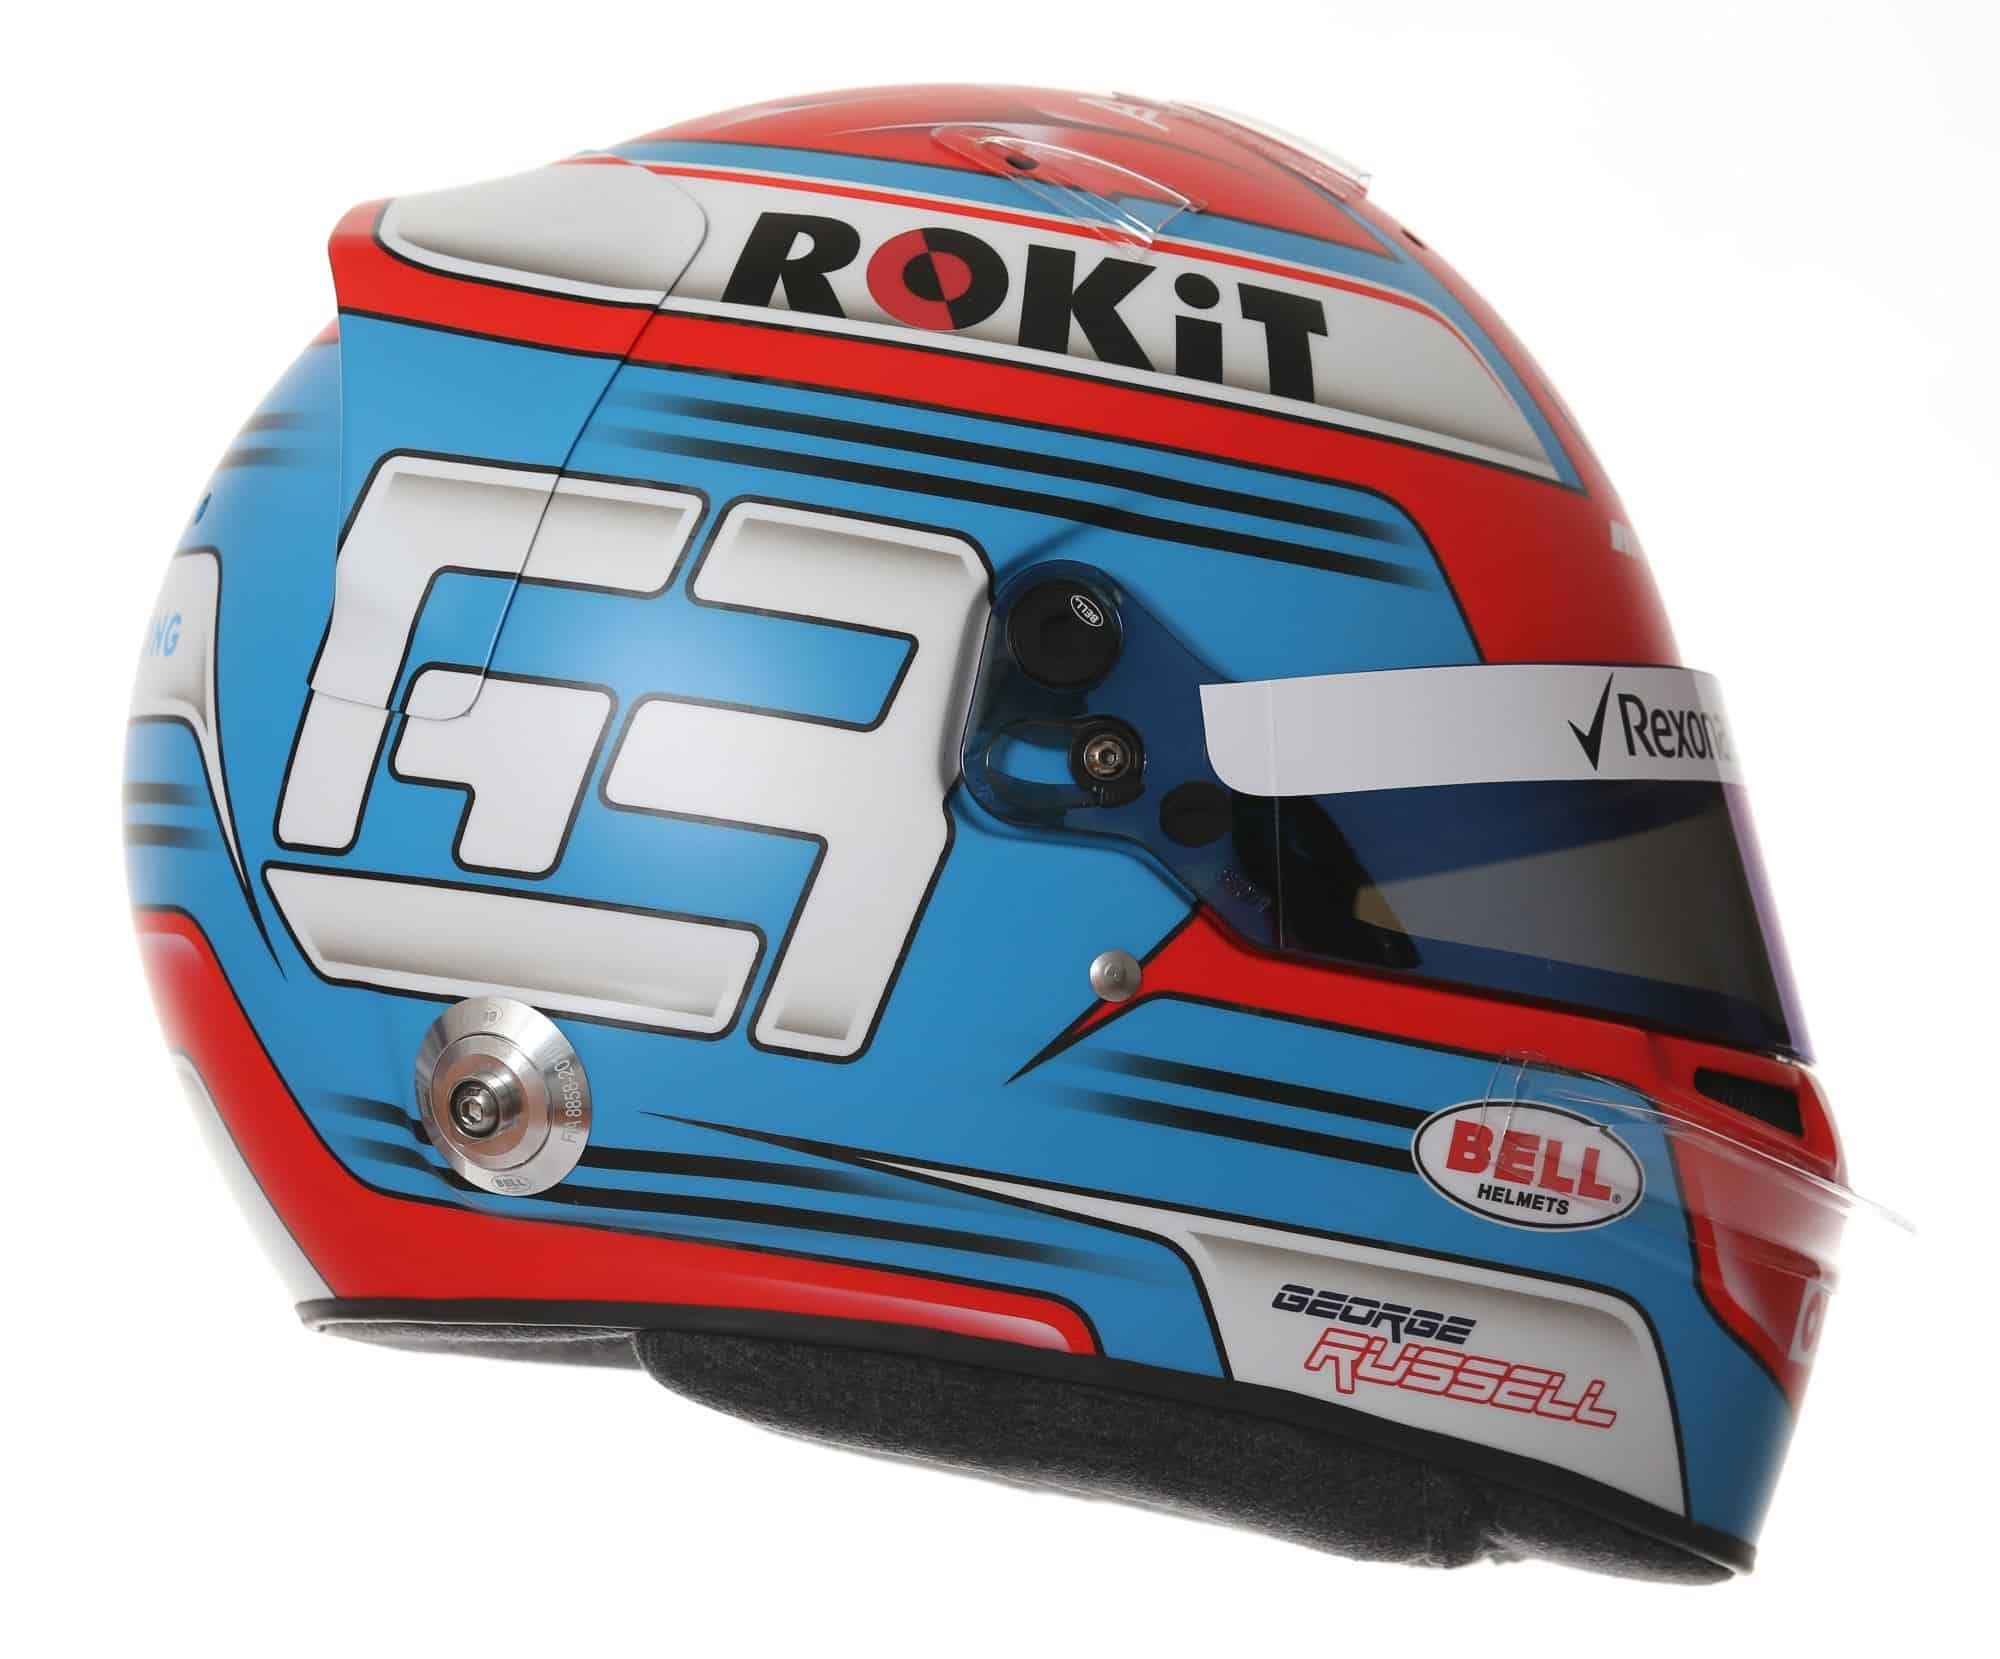 2019 Rokit Williams Racing George Russell helmet right side Photo Williams Edited by MAXF1net